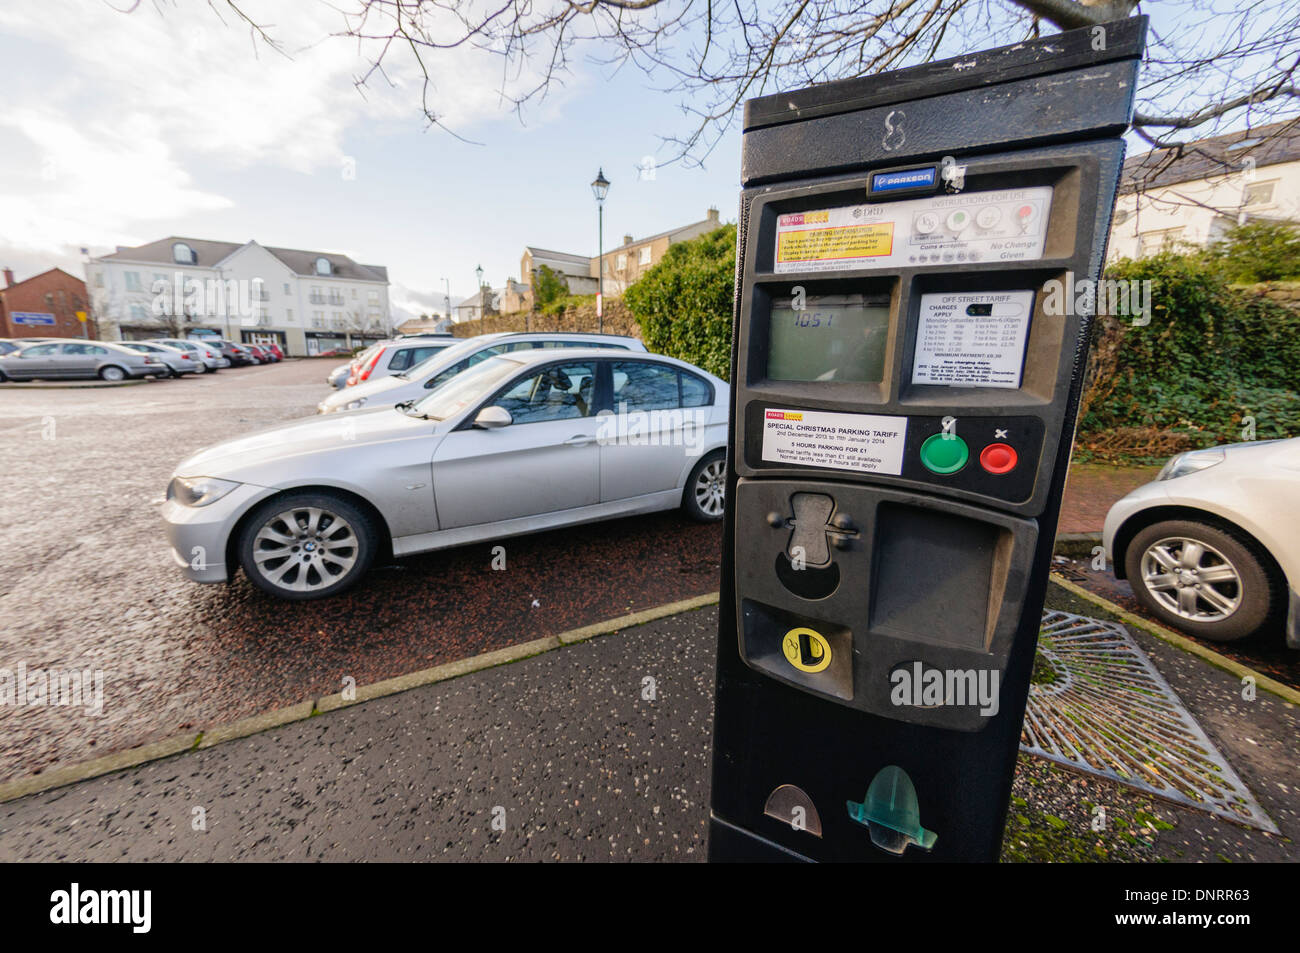 Parking meter at a pay-and-display car park - Stock Image